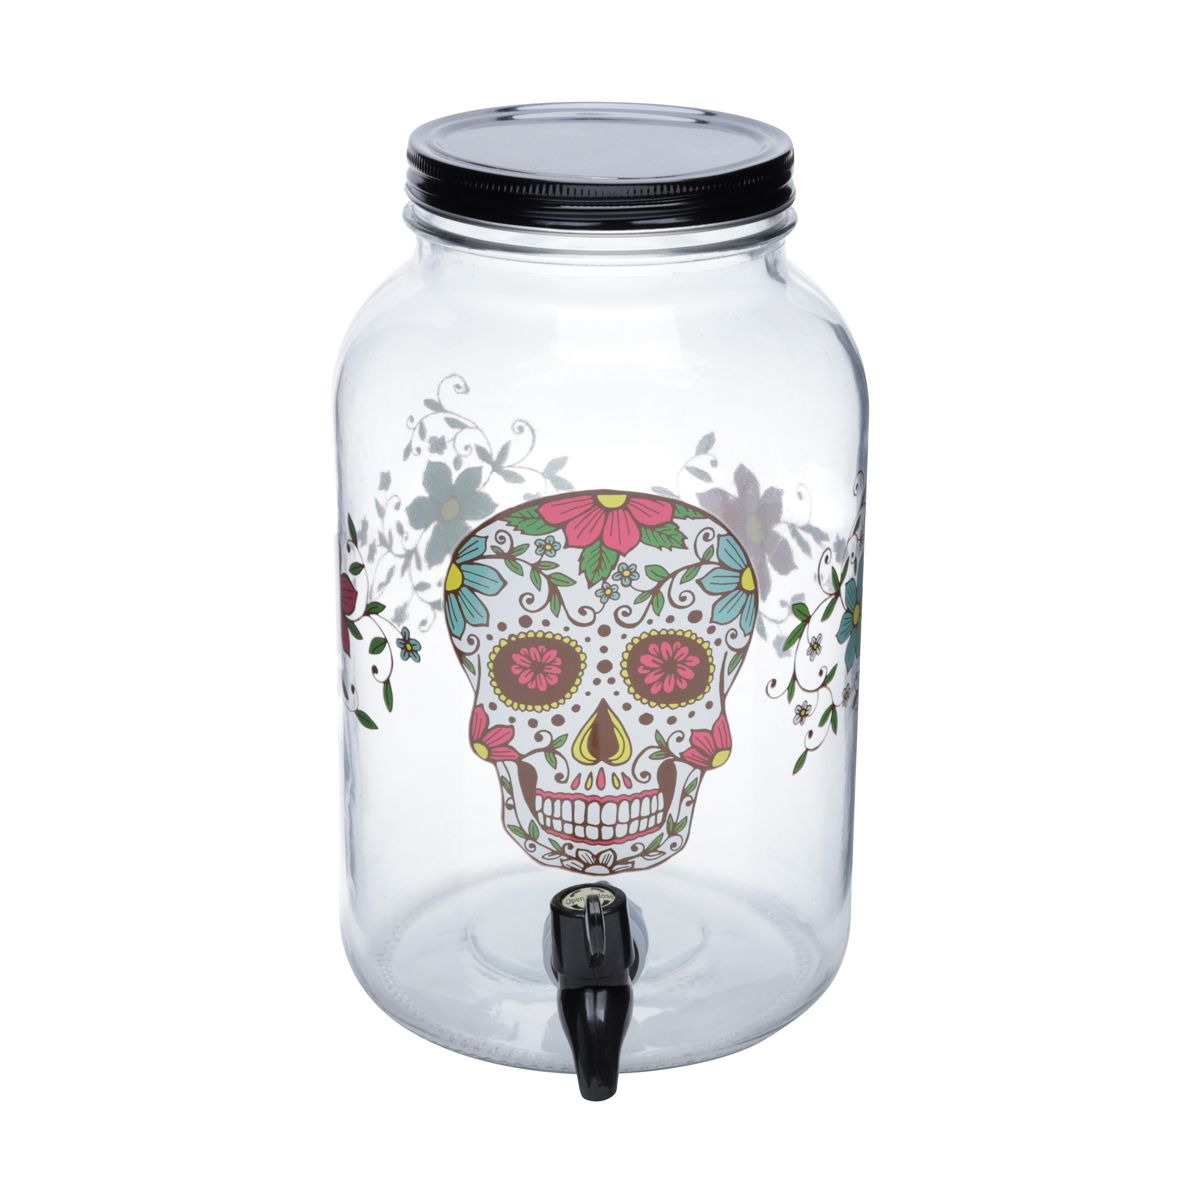 SUQUEIRA DE VIDRO - SIMPLE GLASS SKULL PRETO 15X25,5X15CM 3.5L